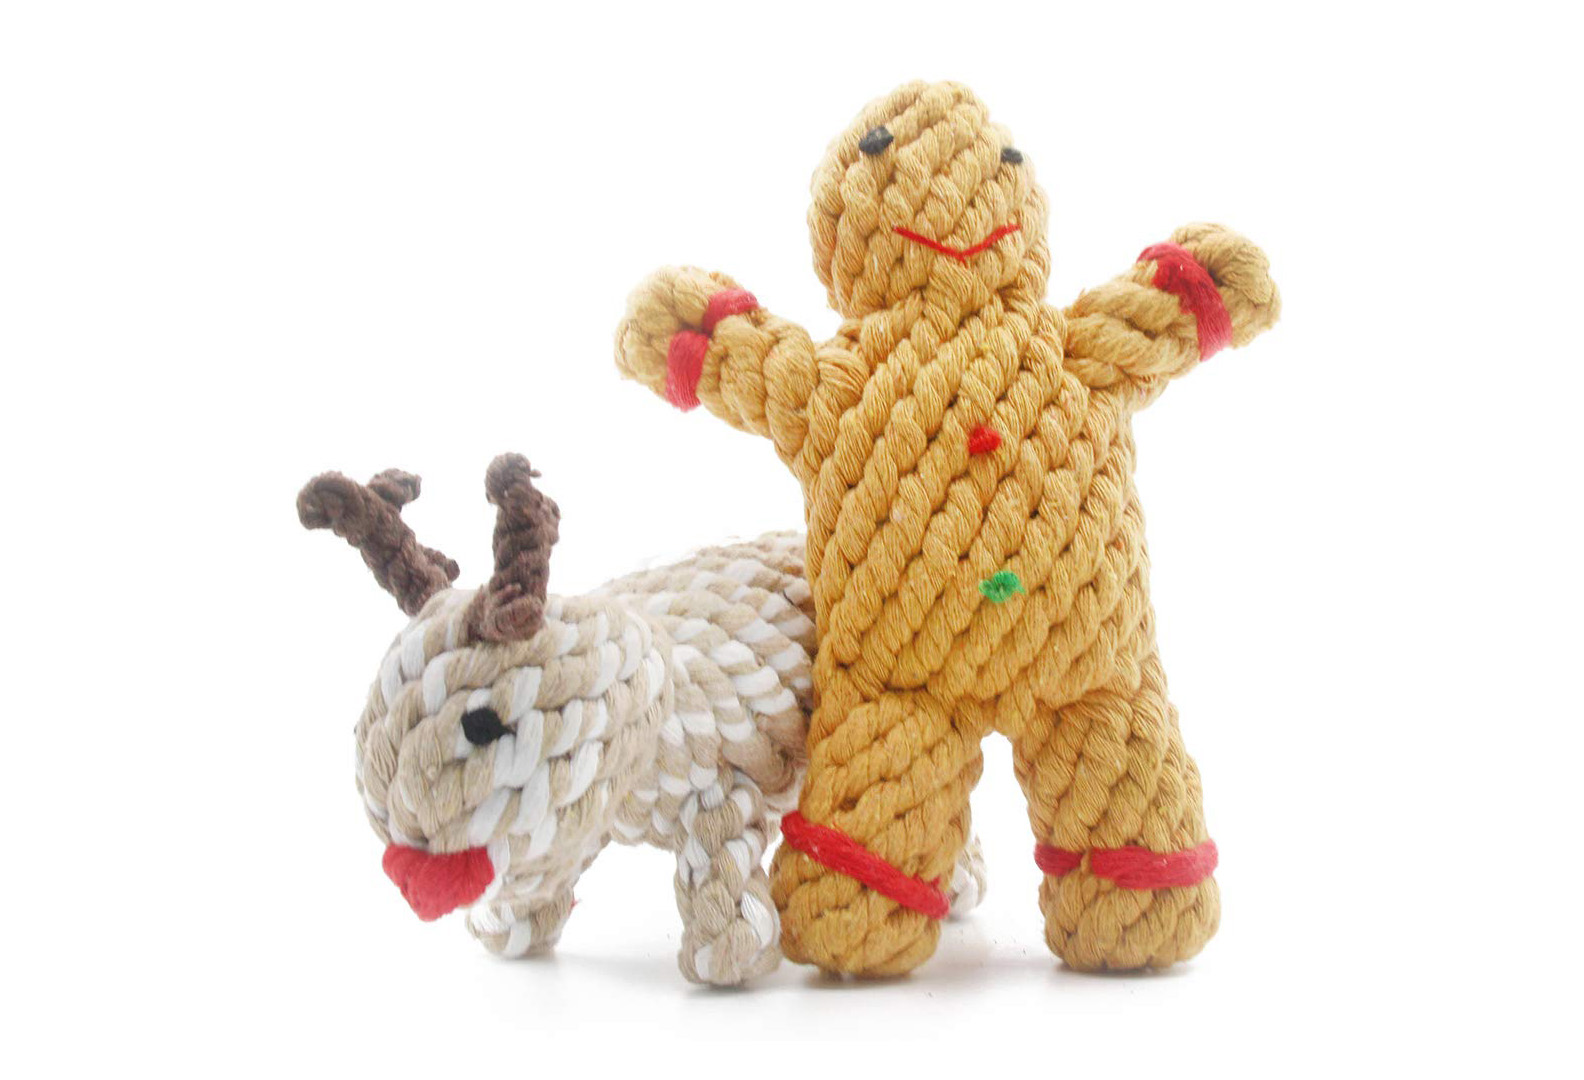 Gingerbread Man and Reindeer Knotted Toys